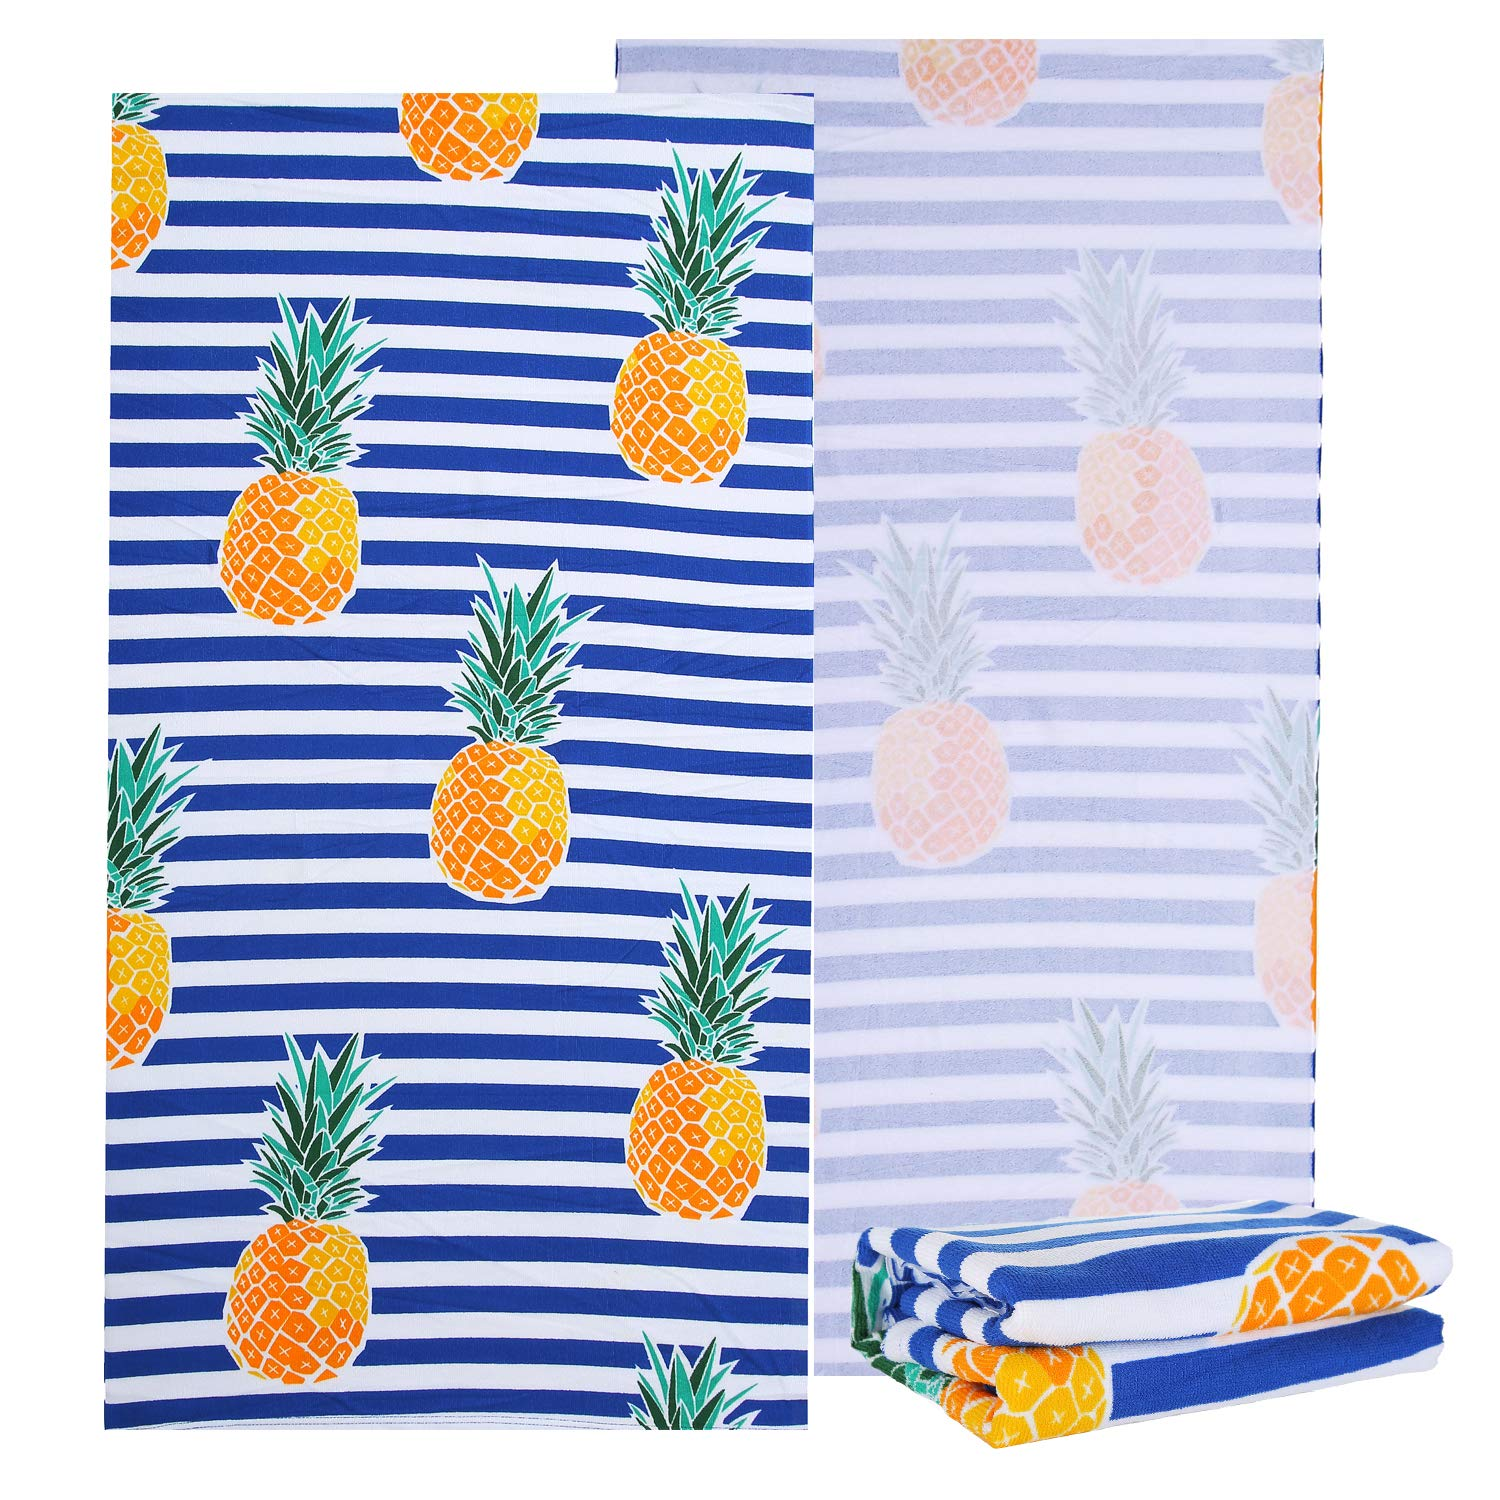 Sharemily home Microfiber Beach Towels for Travel Tropical thick beach towels